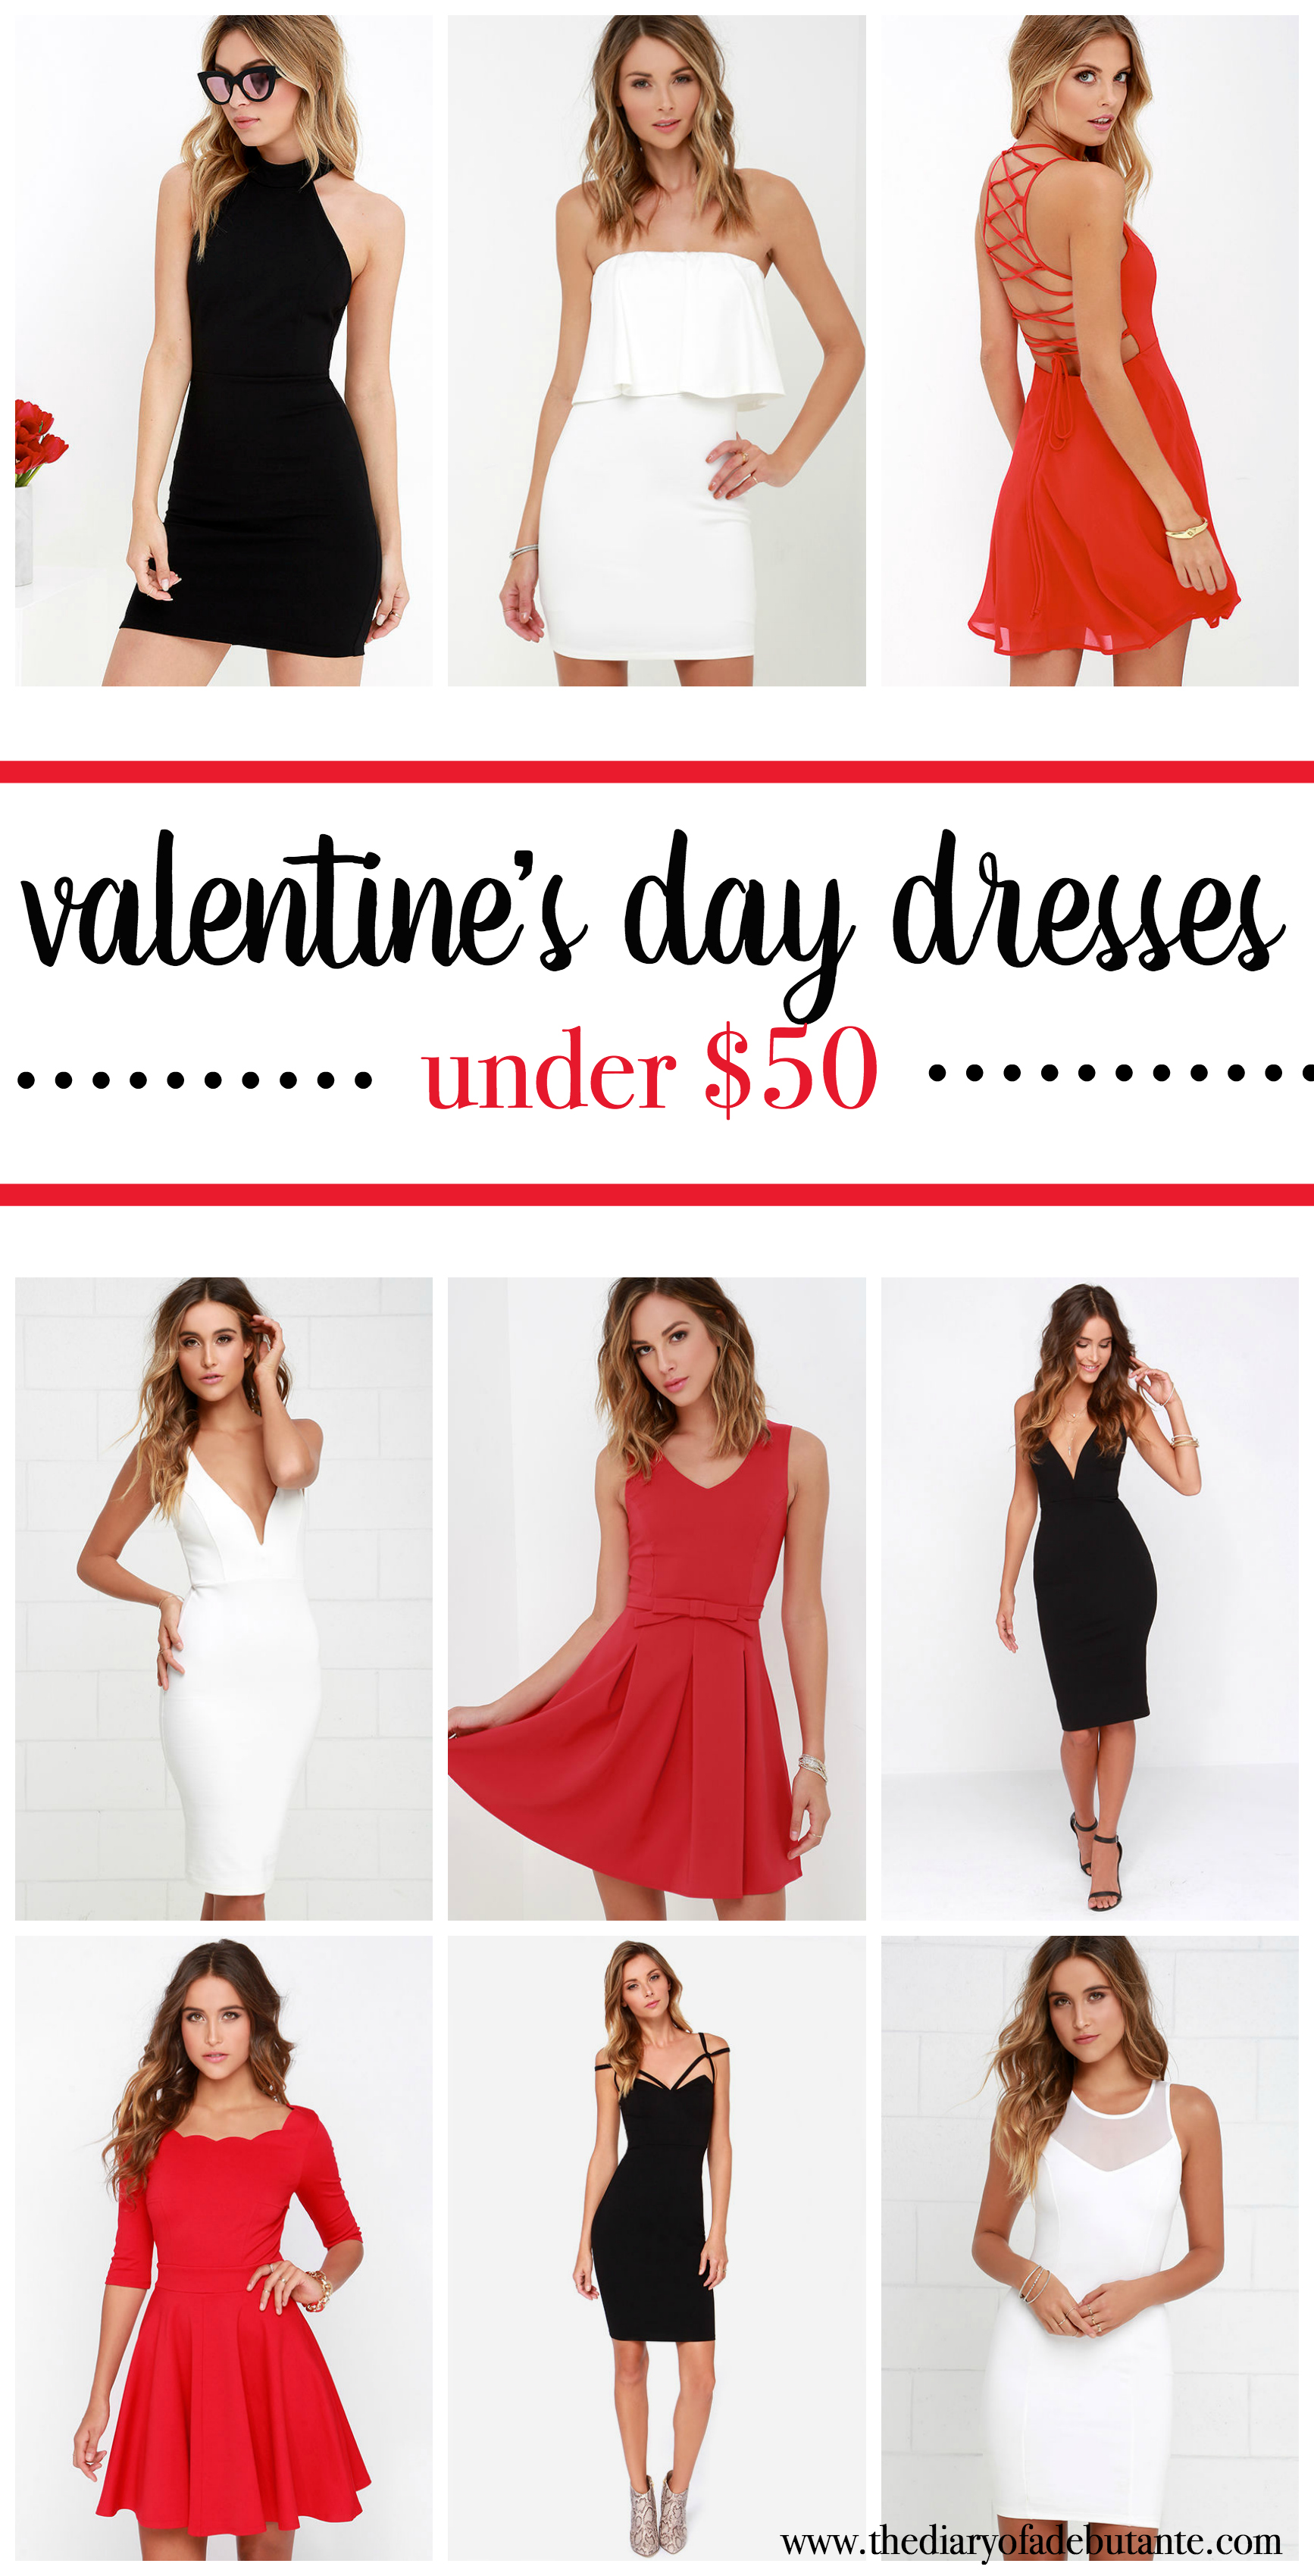 Affordable Valentine's Day Dresses - Diary of a Debutante